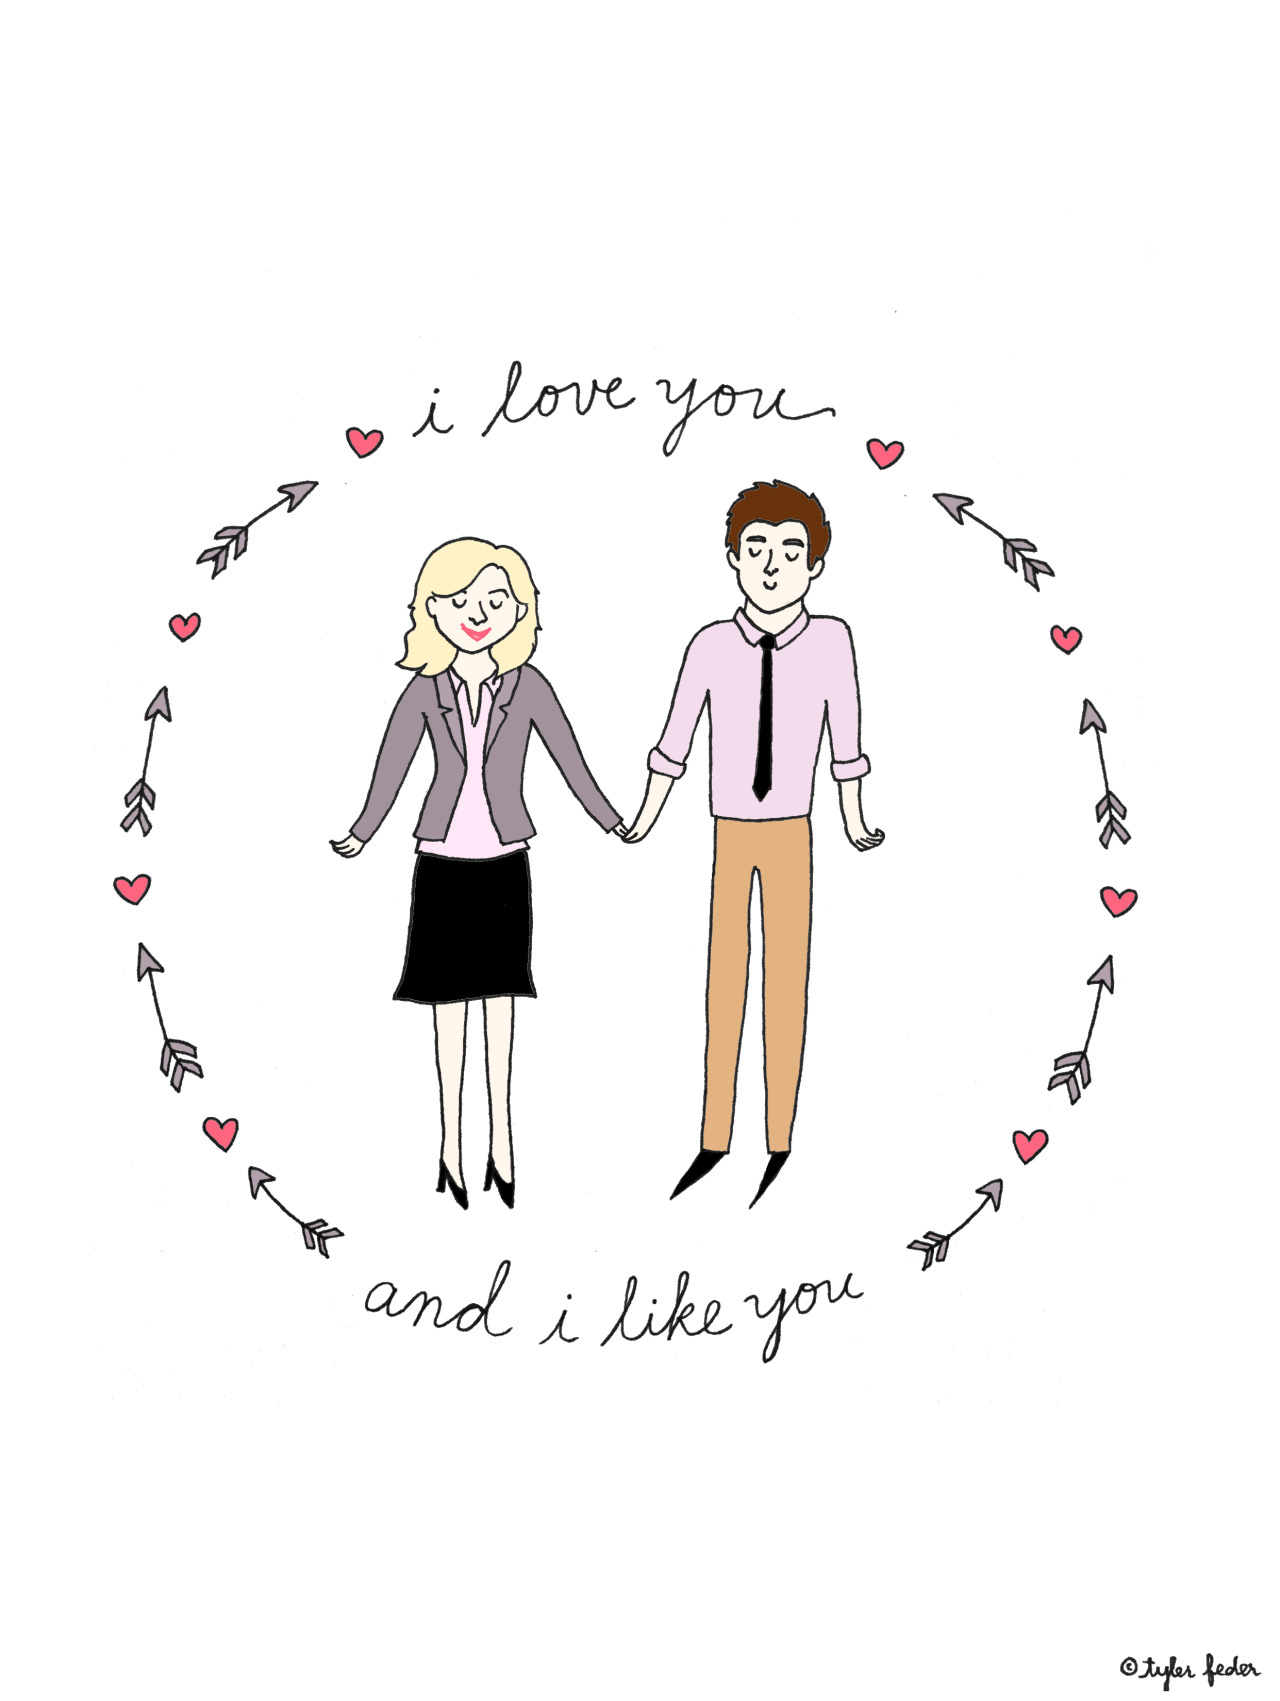 I love you and I like you (by Tyler Feder)